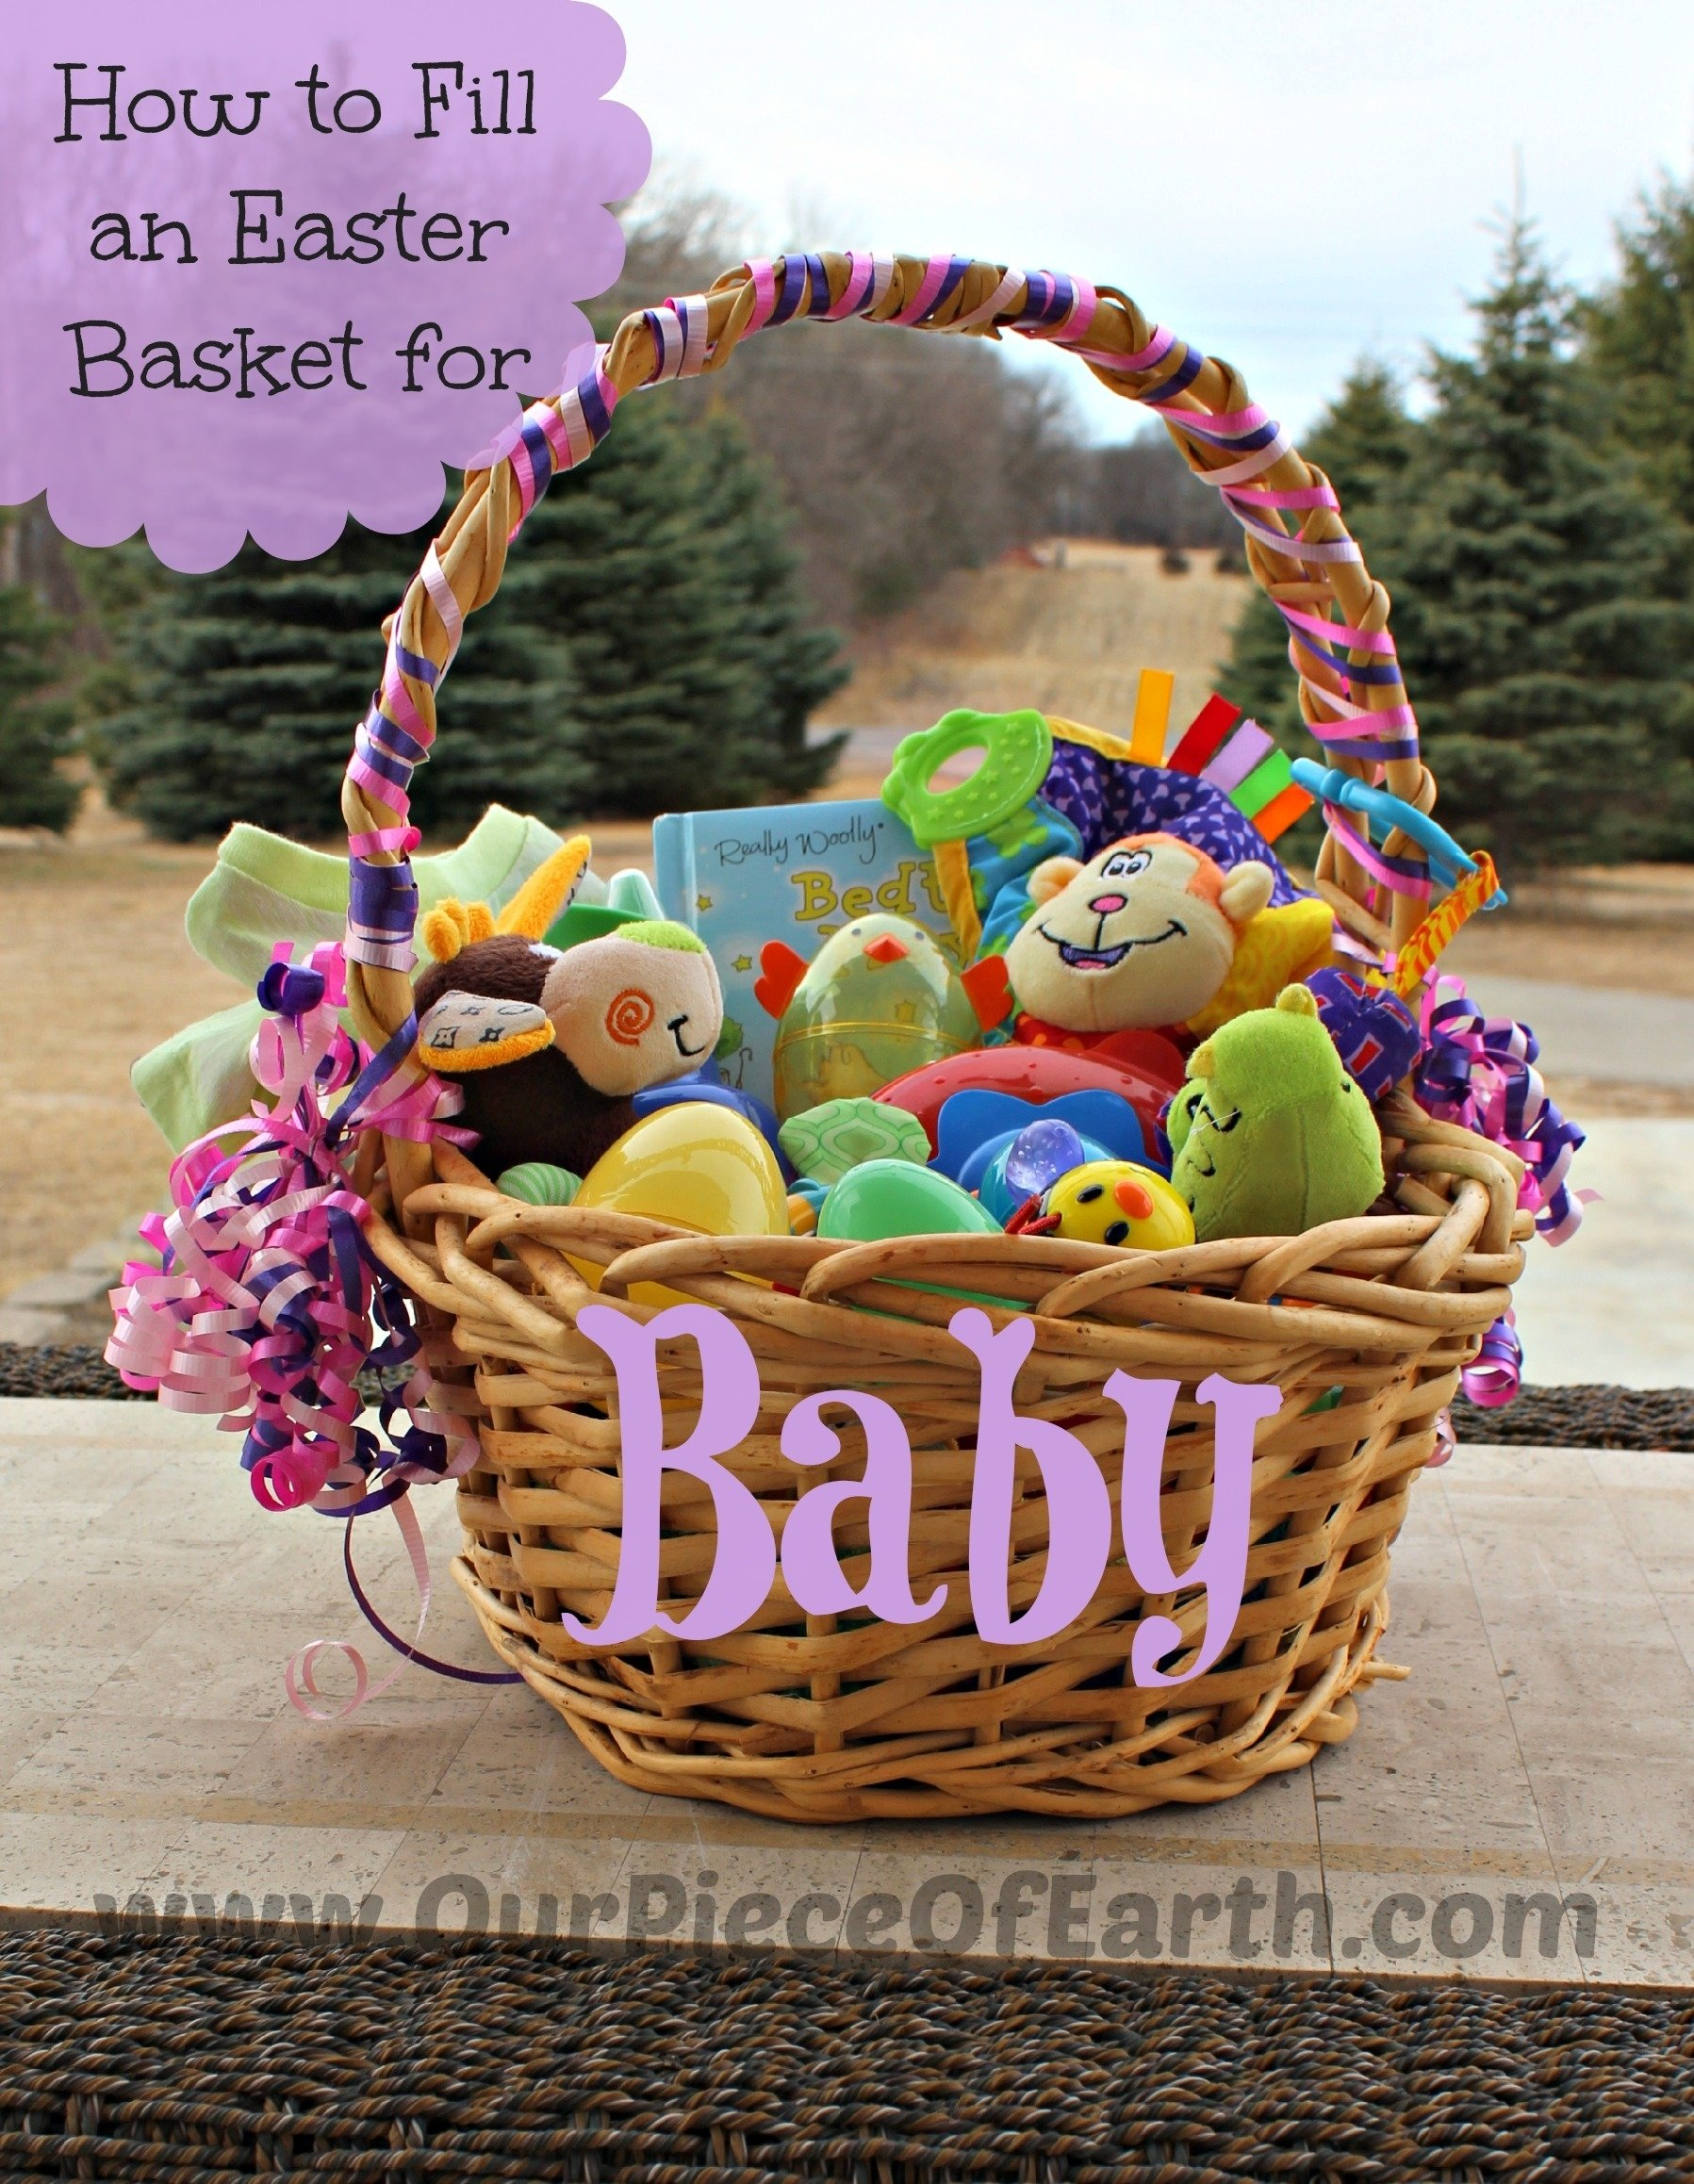 10 Stylish Baby First Easter Basket Ideas a sneak peek at henrys easter basket fun and easy ideas for 1